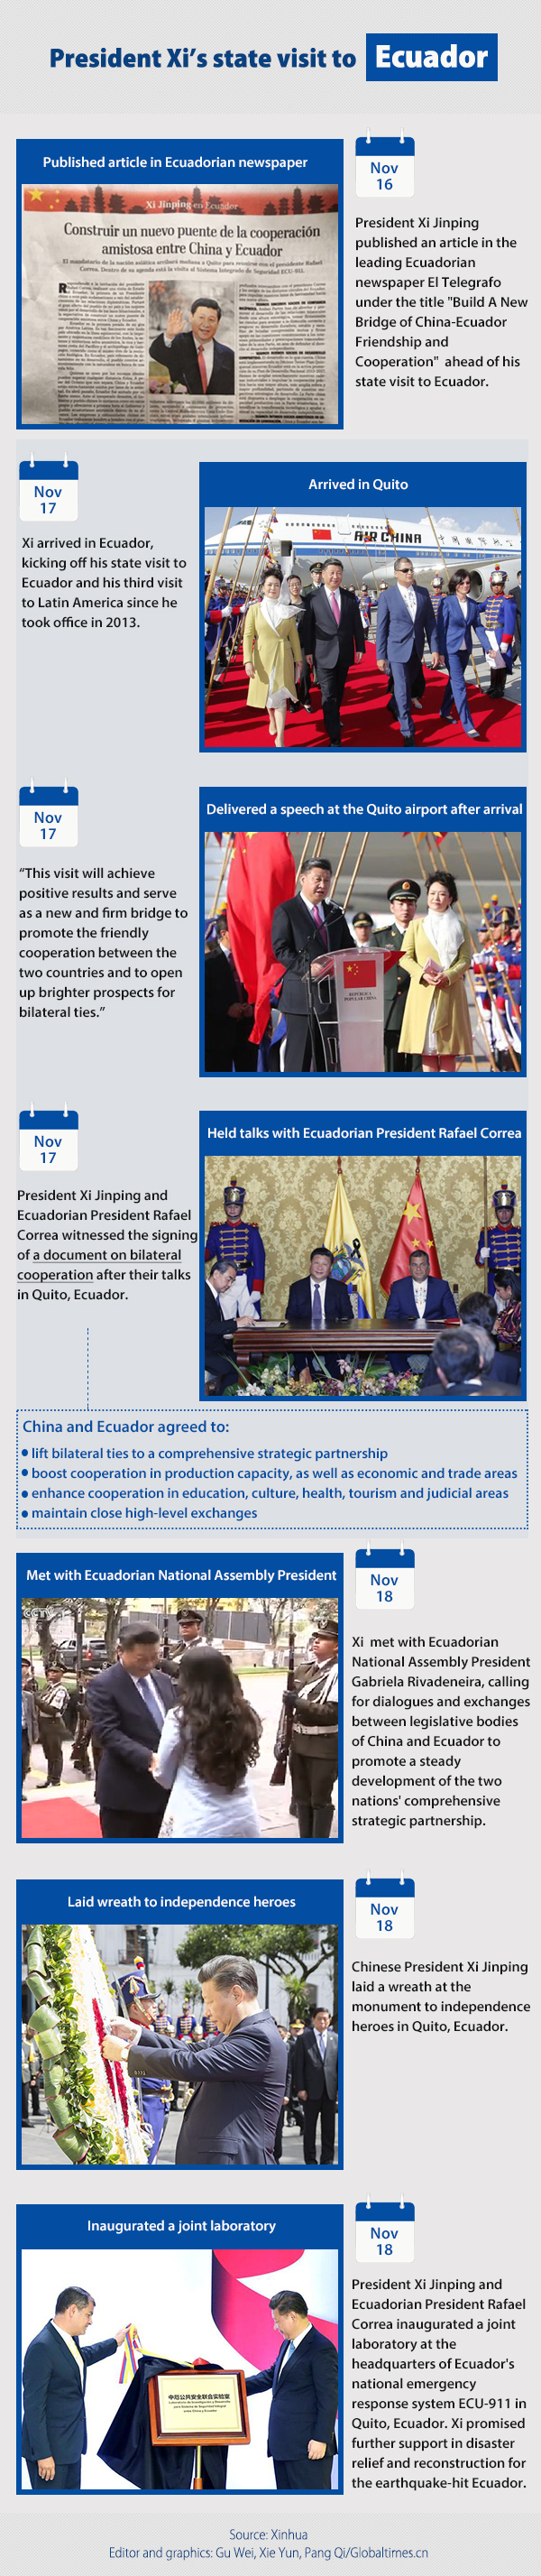 Graphic:Globaltimes.cn